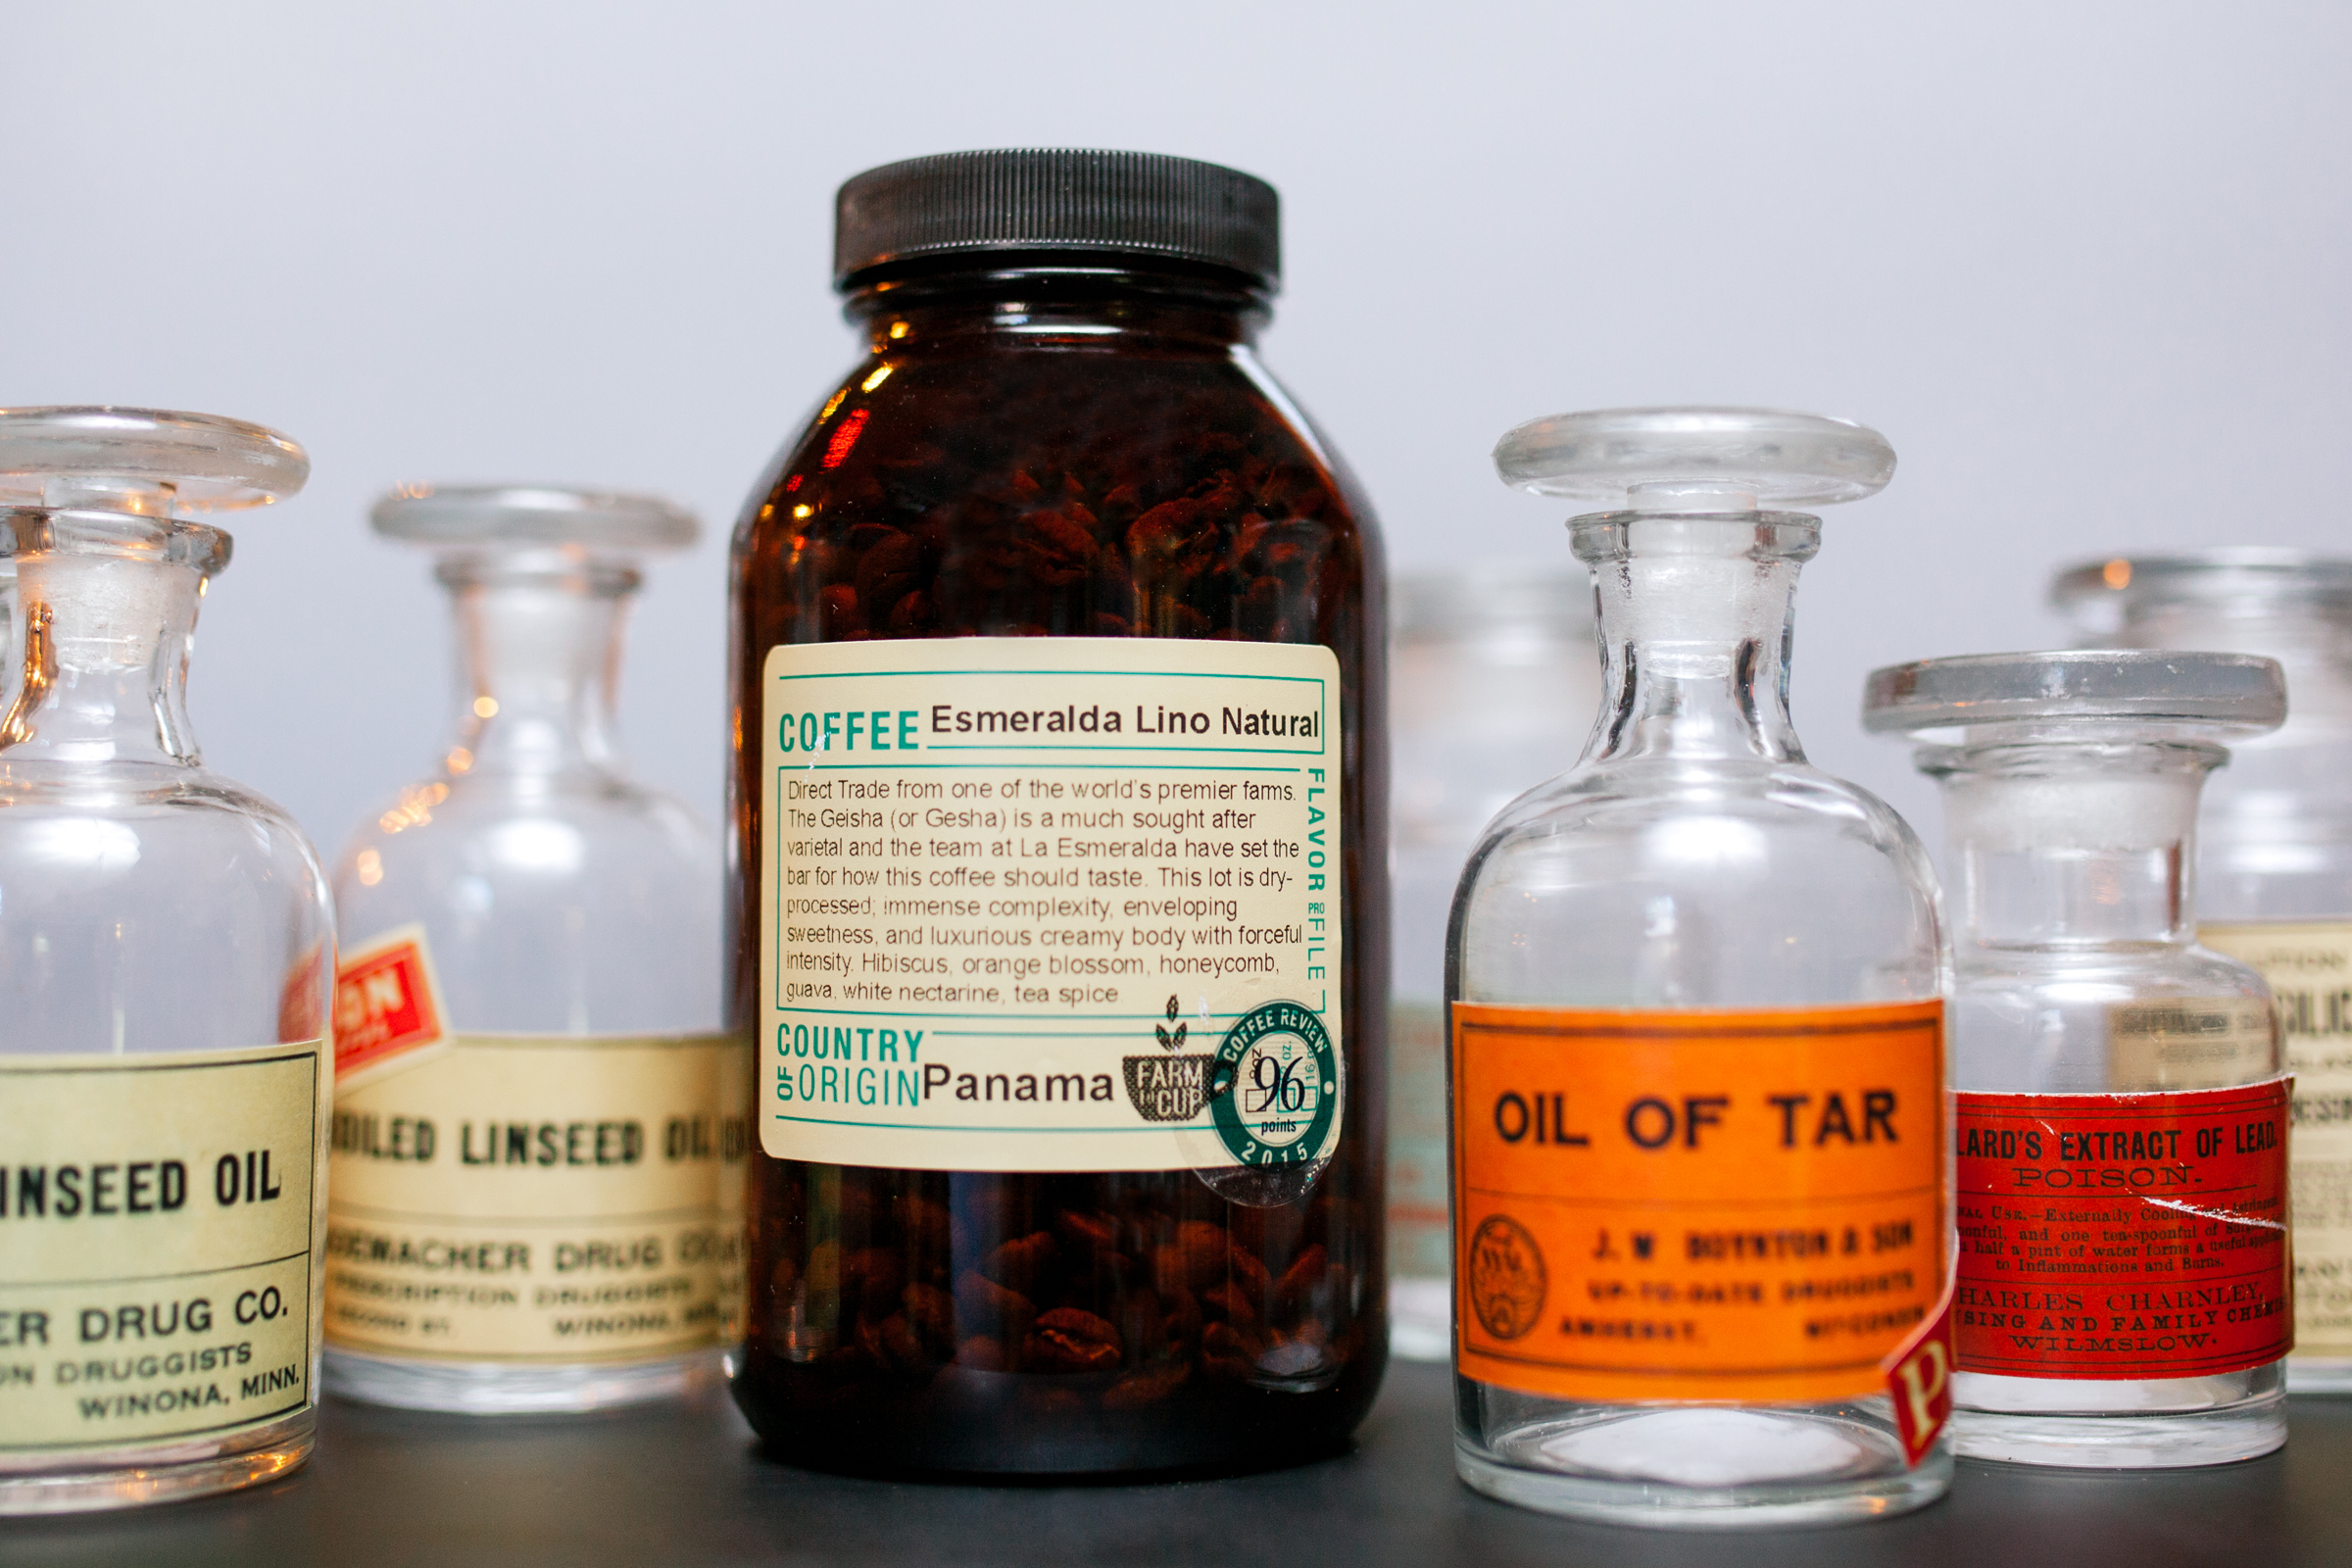 Vintage Apothecary Bottles: $11. Photo by Julie Rings.